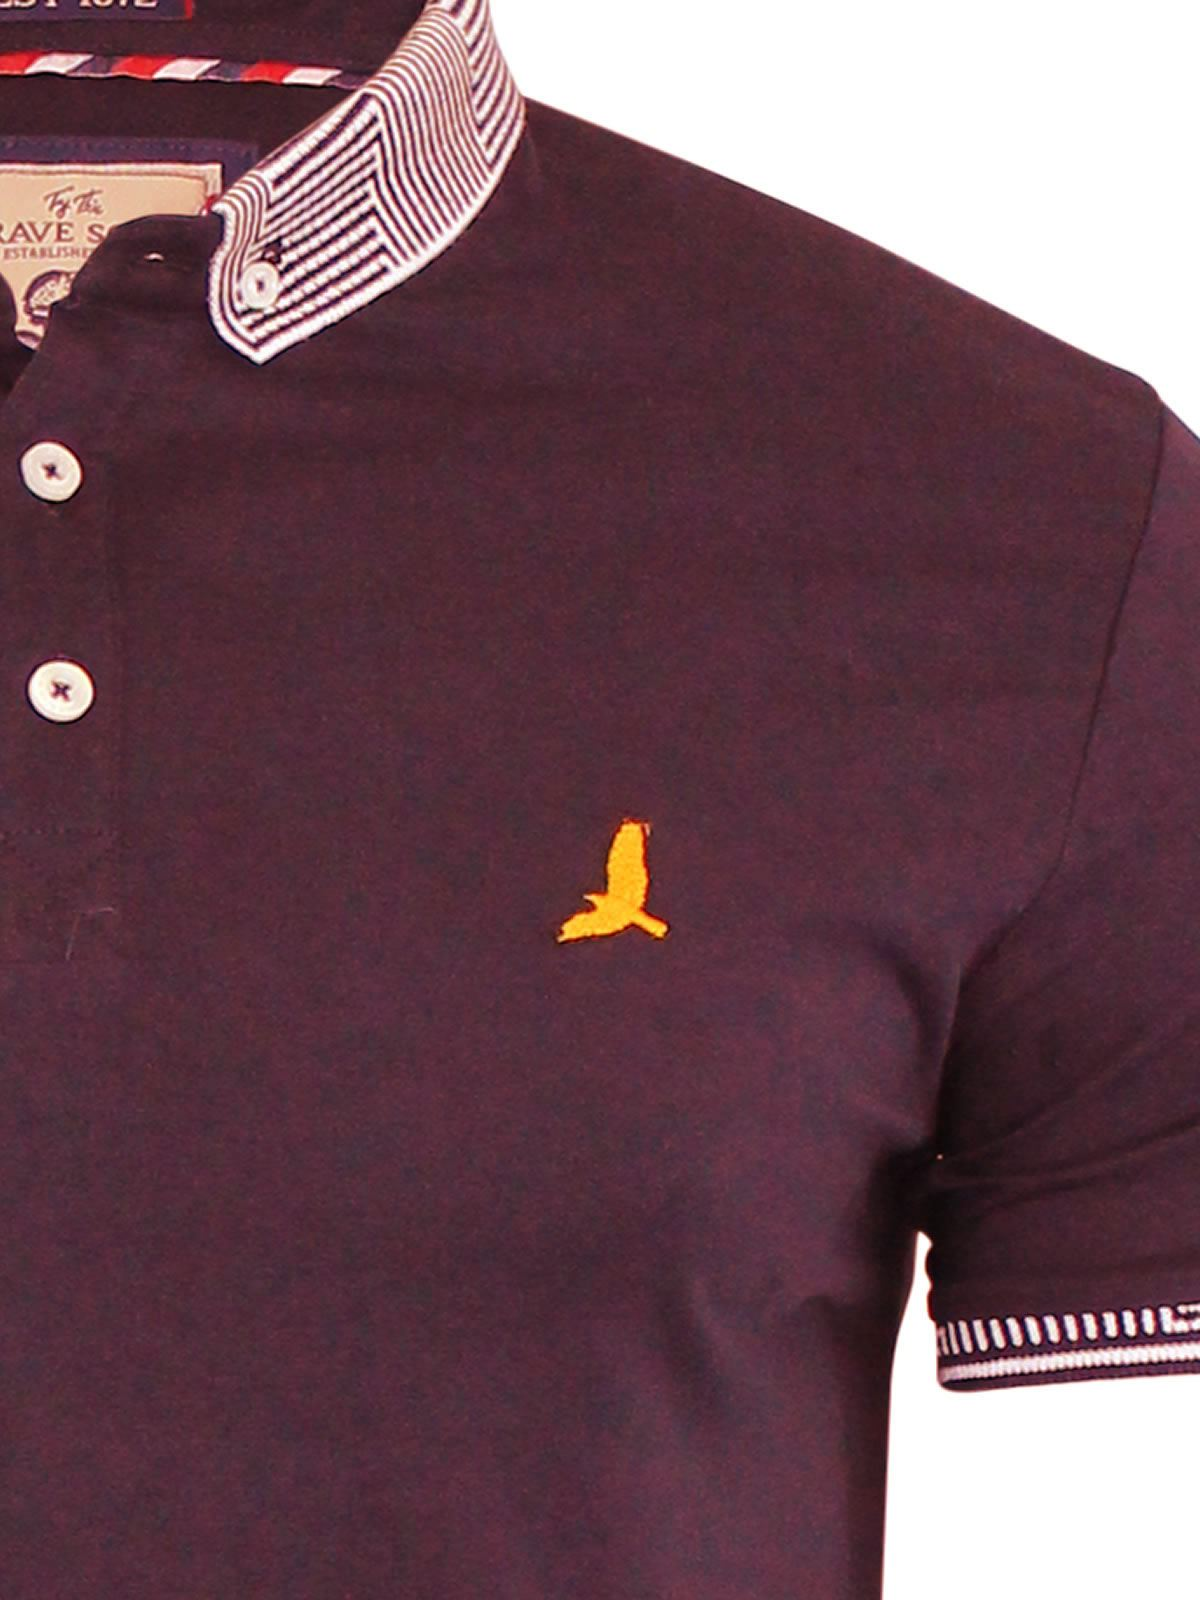 Brave-Soul-Glover-Mens-Polo-T-Shirt-Cotton-Collared-Short-Sleeve-Casual-Top thumbnail 37